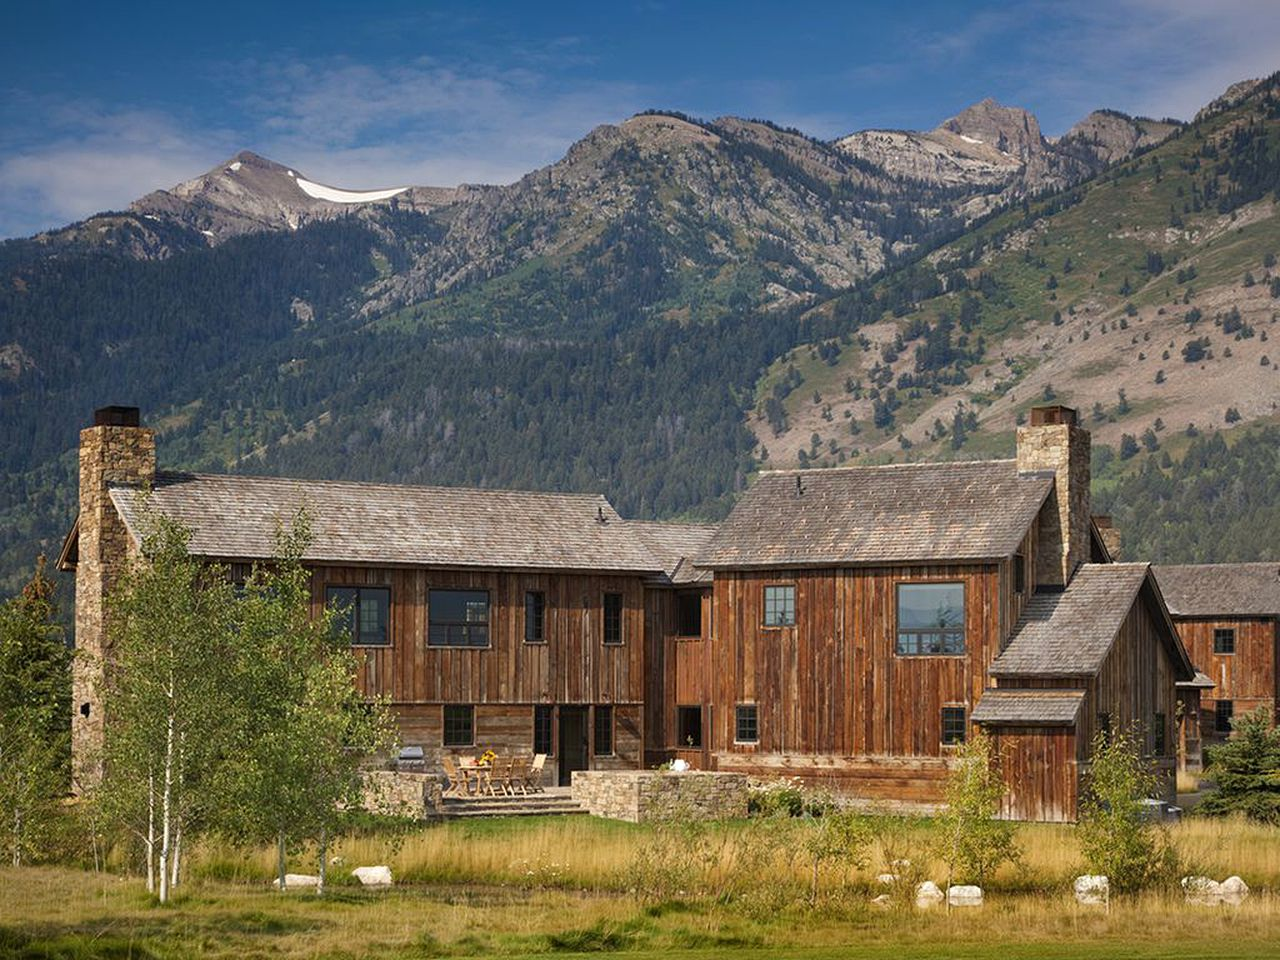 Cabins (Teton Village, Wyoming, United States)